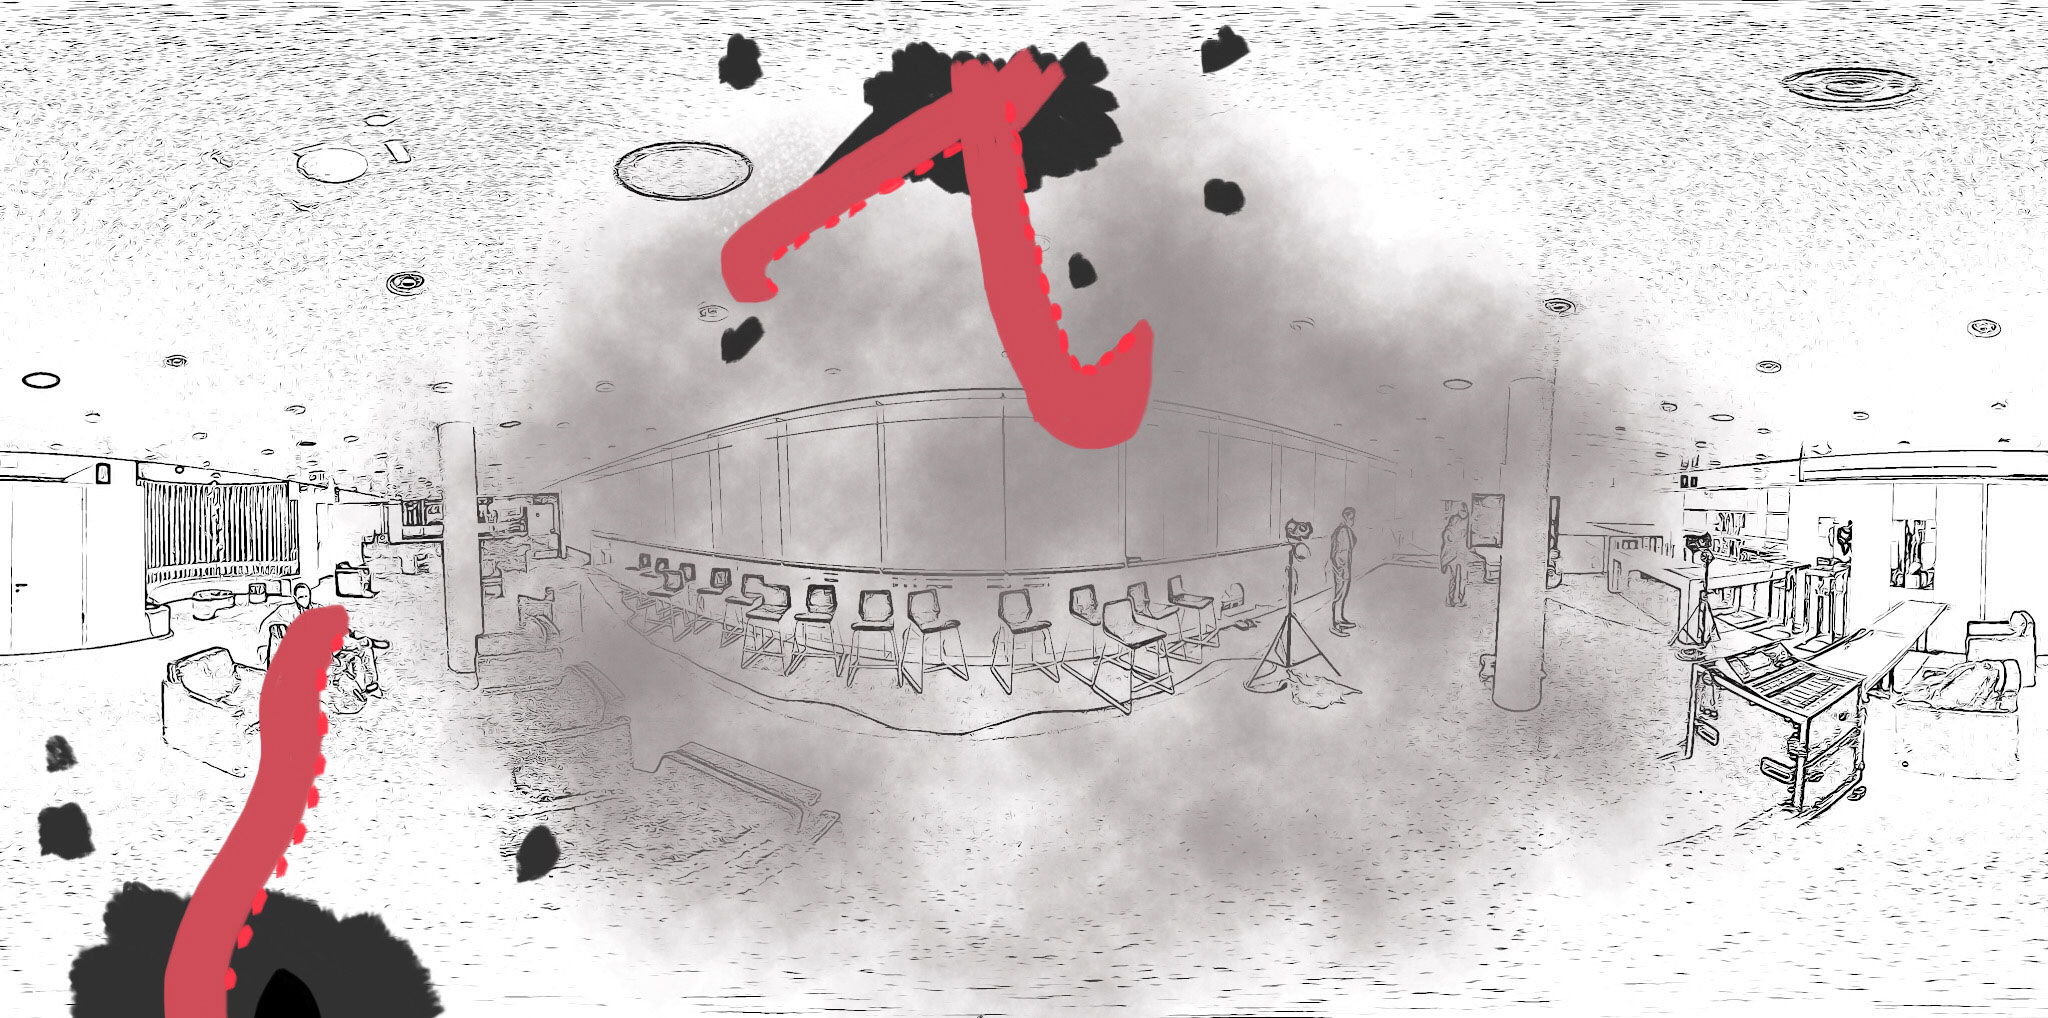 Students have been exploring the world of virtual reality. Drawing by Martyna Czaicka